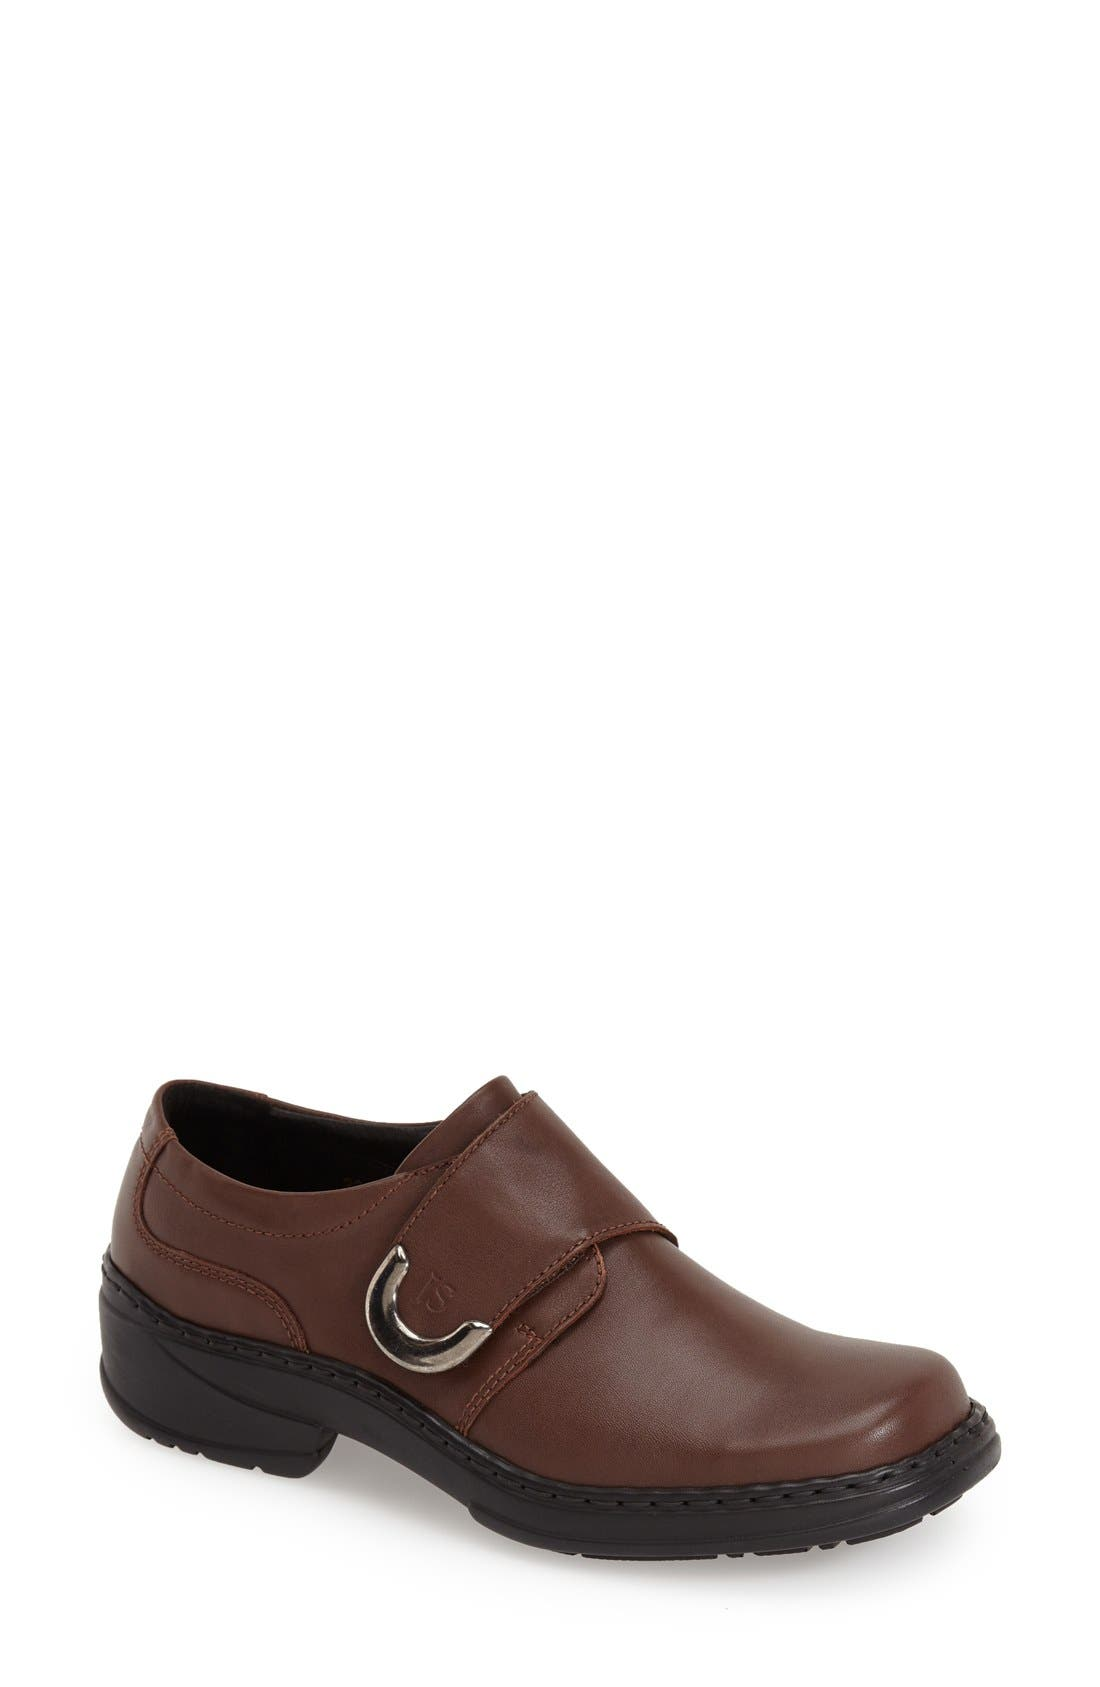 Josef Seibel 'Theresa' Slip-On